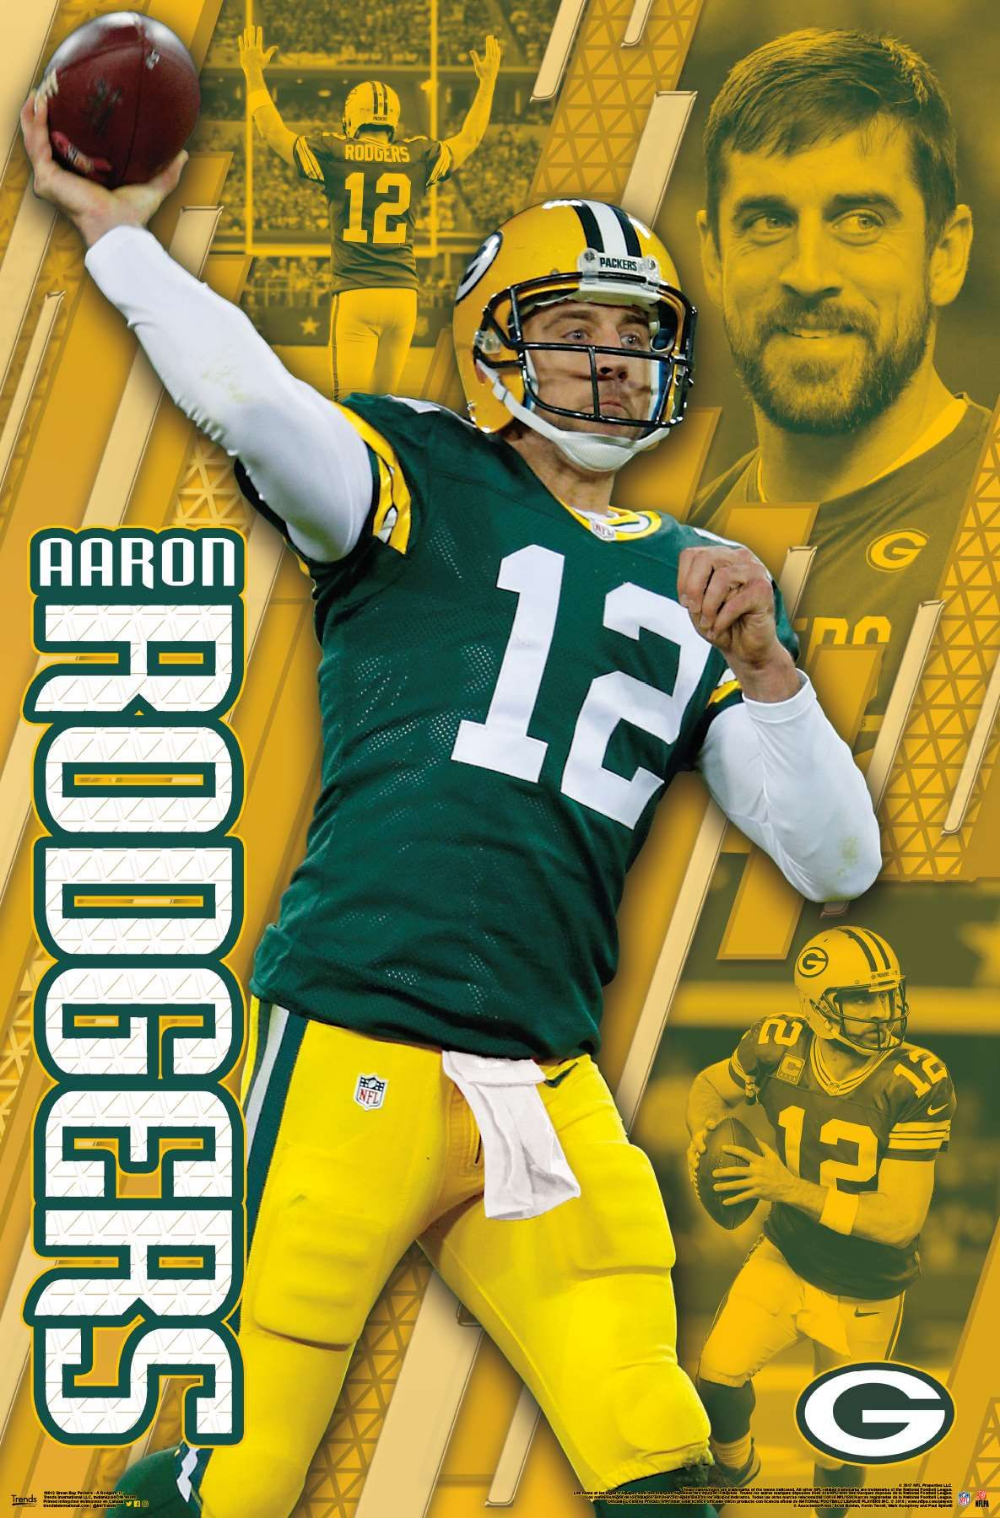 Nfl Green Bay Packers Aaron Rodgers In 2020 Green Bay Packers Aaron Rodgers Nfl Green Bay Green Bay Packers